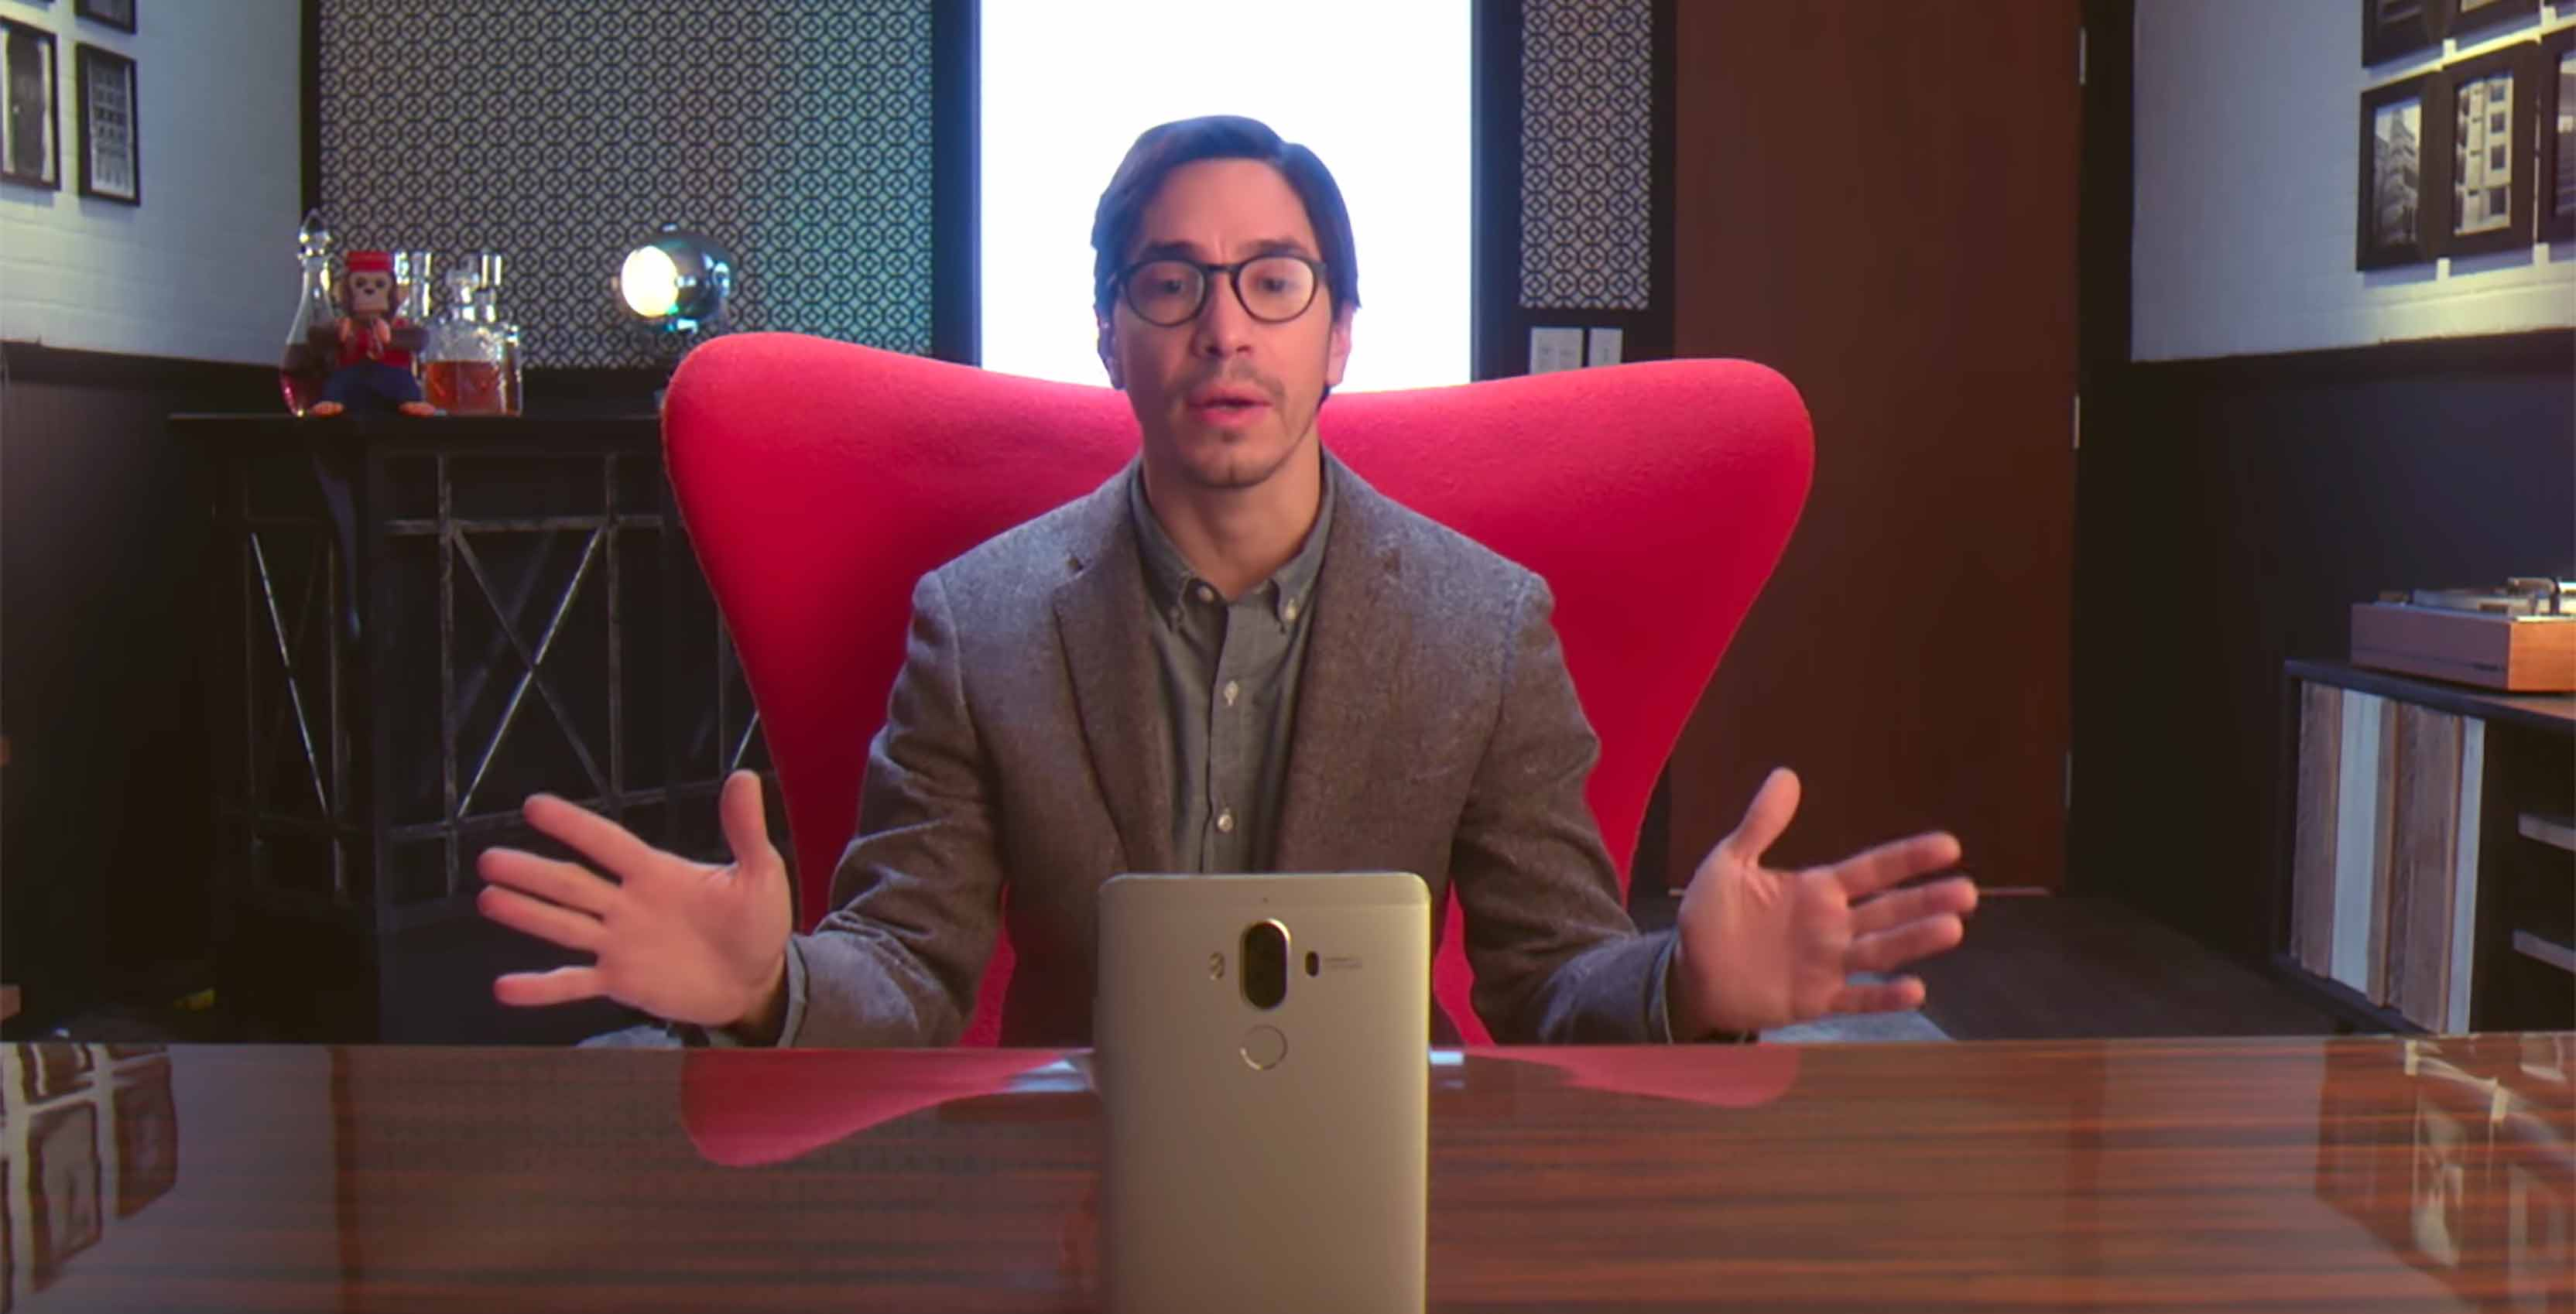 huawei mate 9 justin long commercial